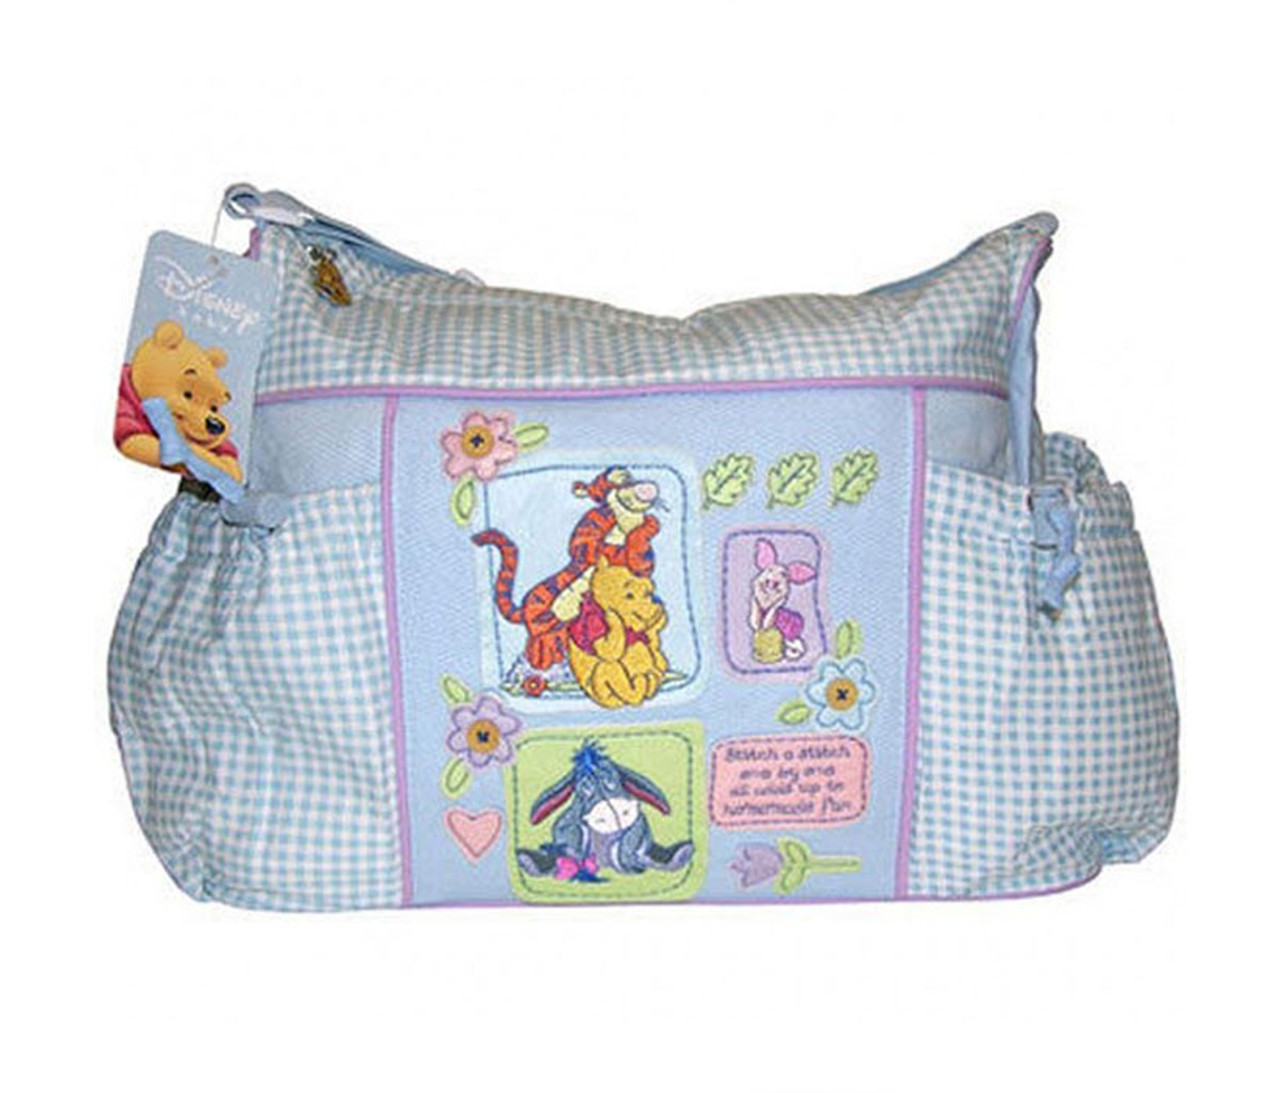 4e29511dc331 ... Accessories Disney Baby Winnie The Pooh Blue Gingham Diaper Bag · 109018